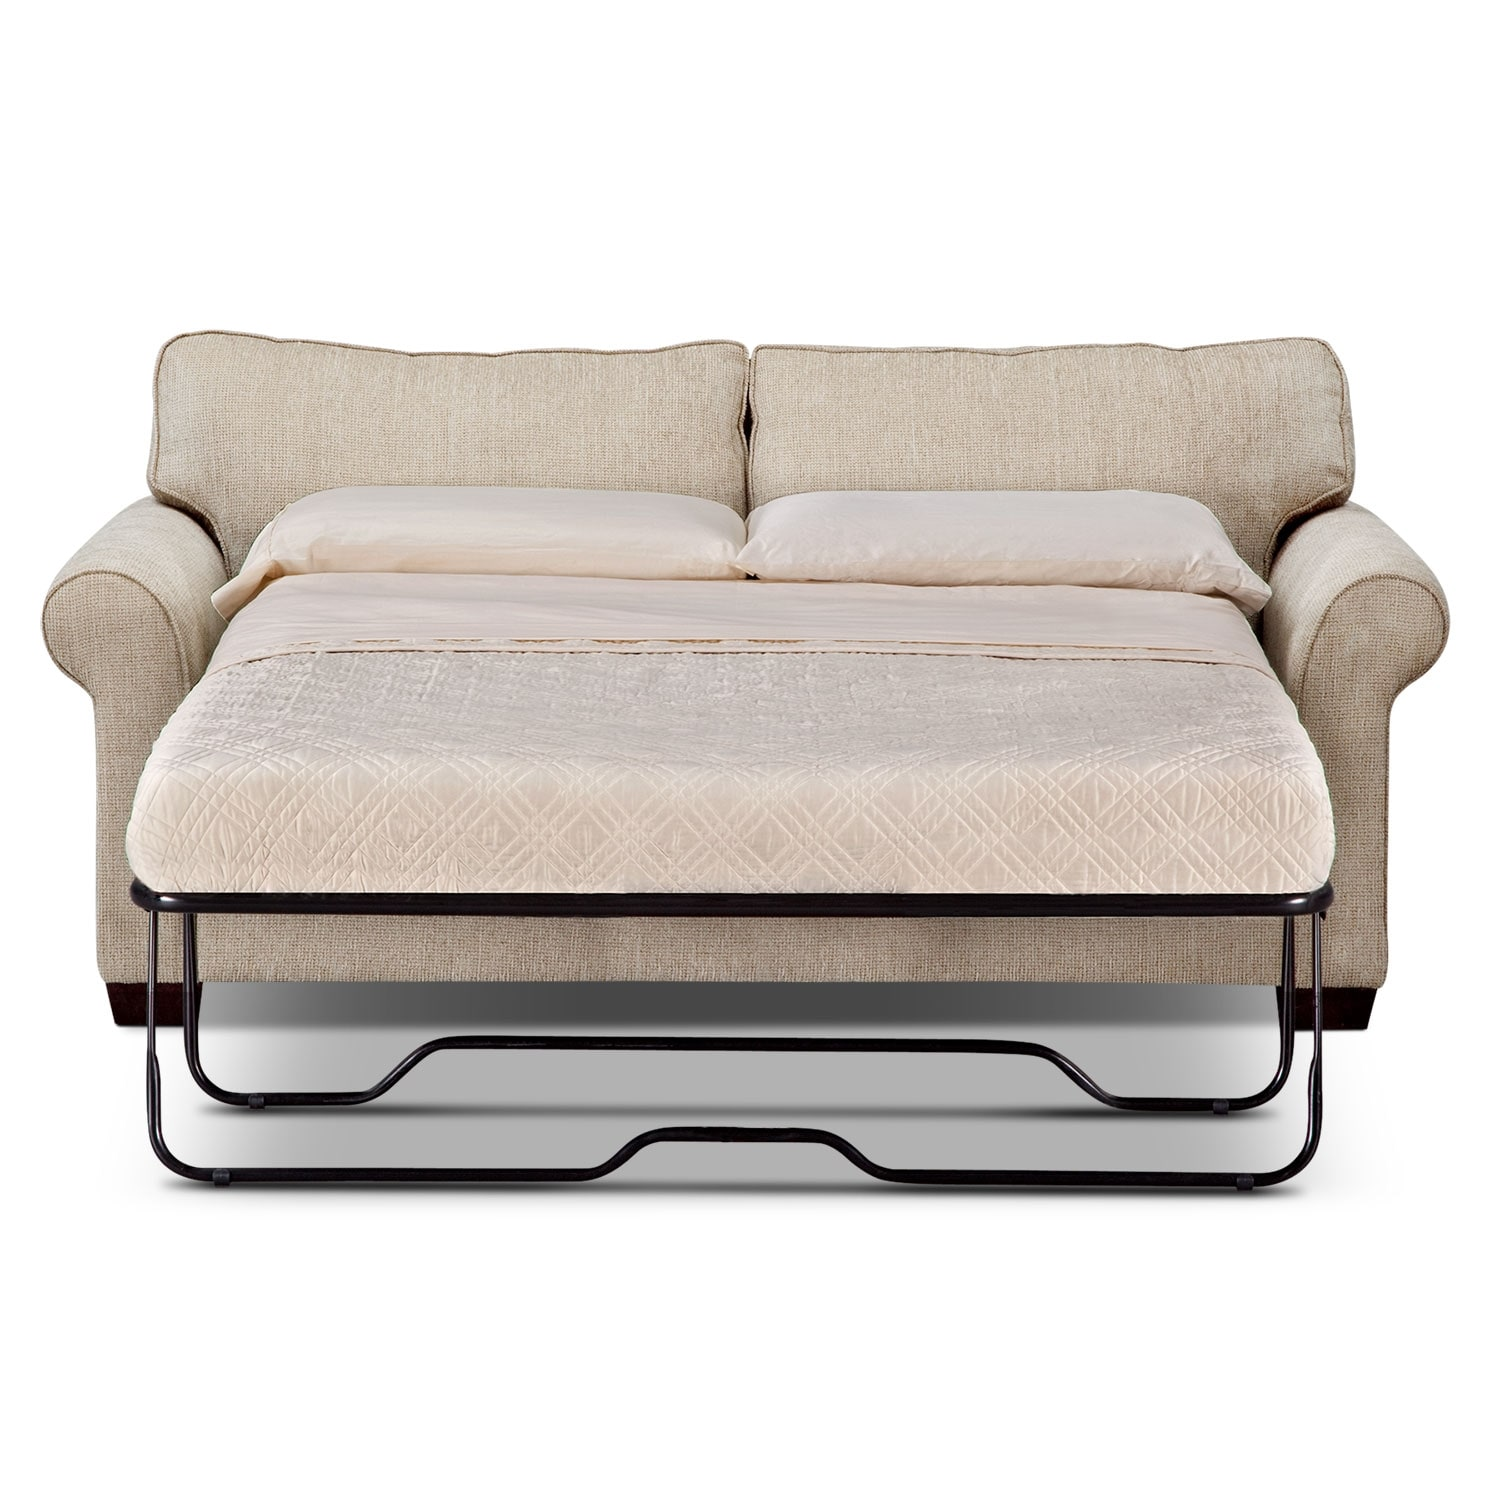 Fletcher Full Memory Foam Sleeper Sofa Beige Value